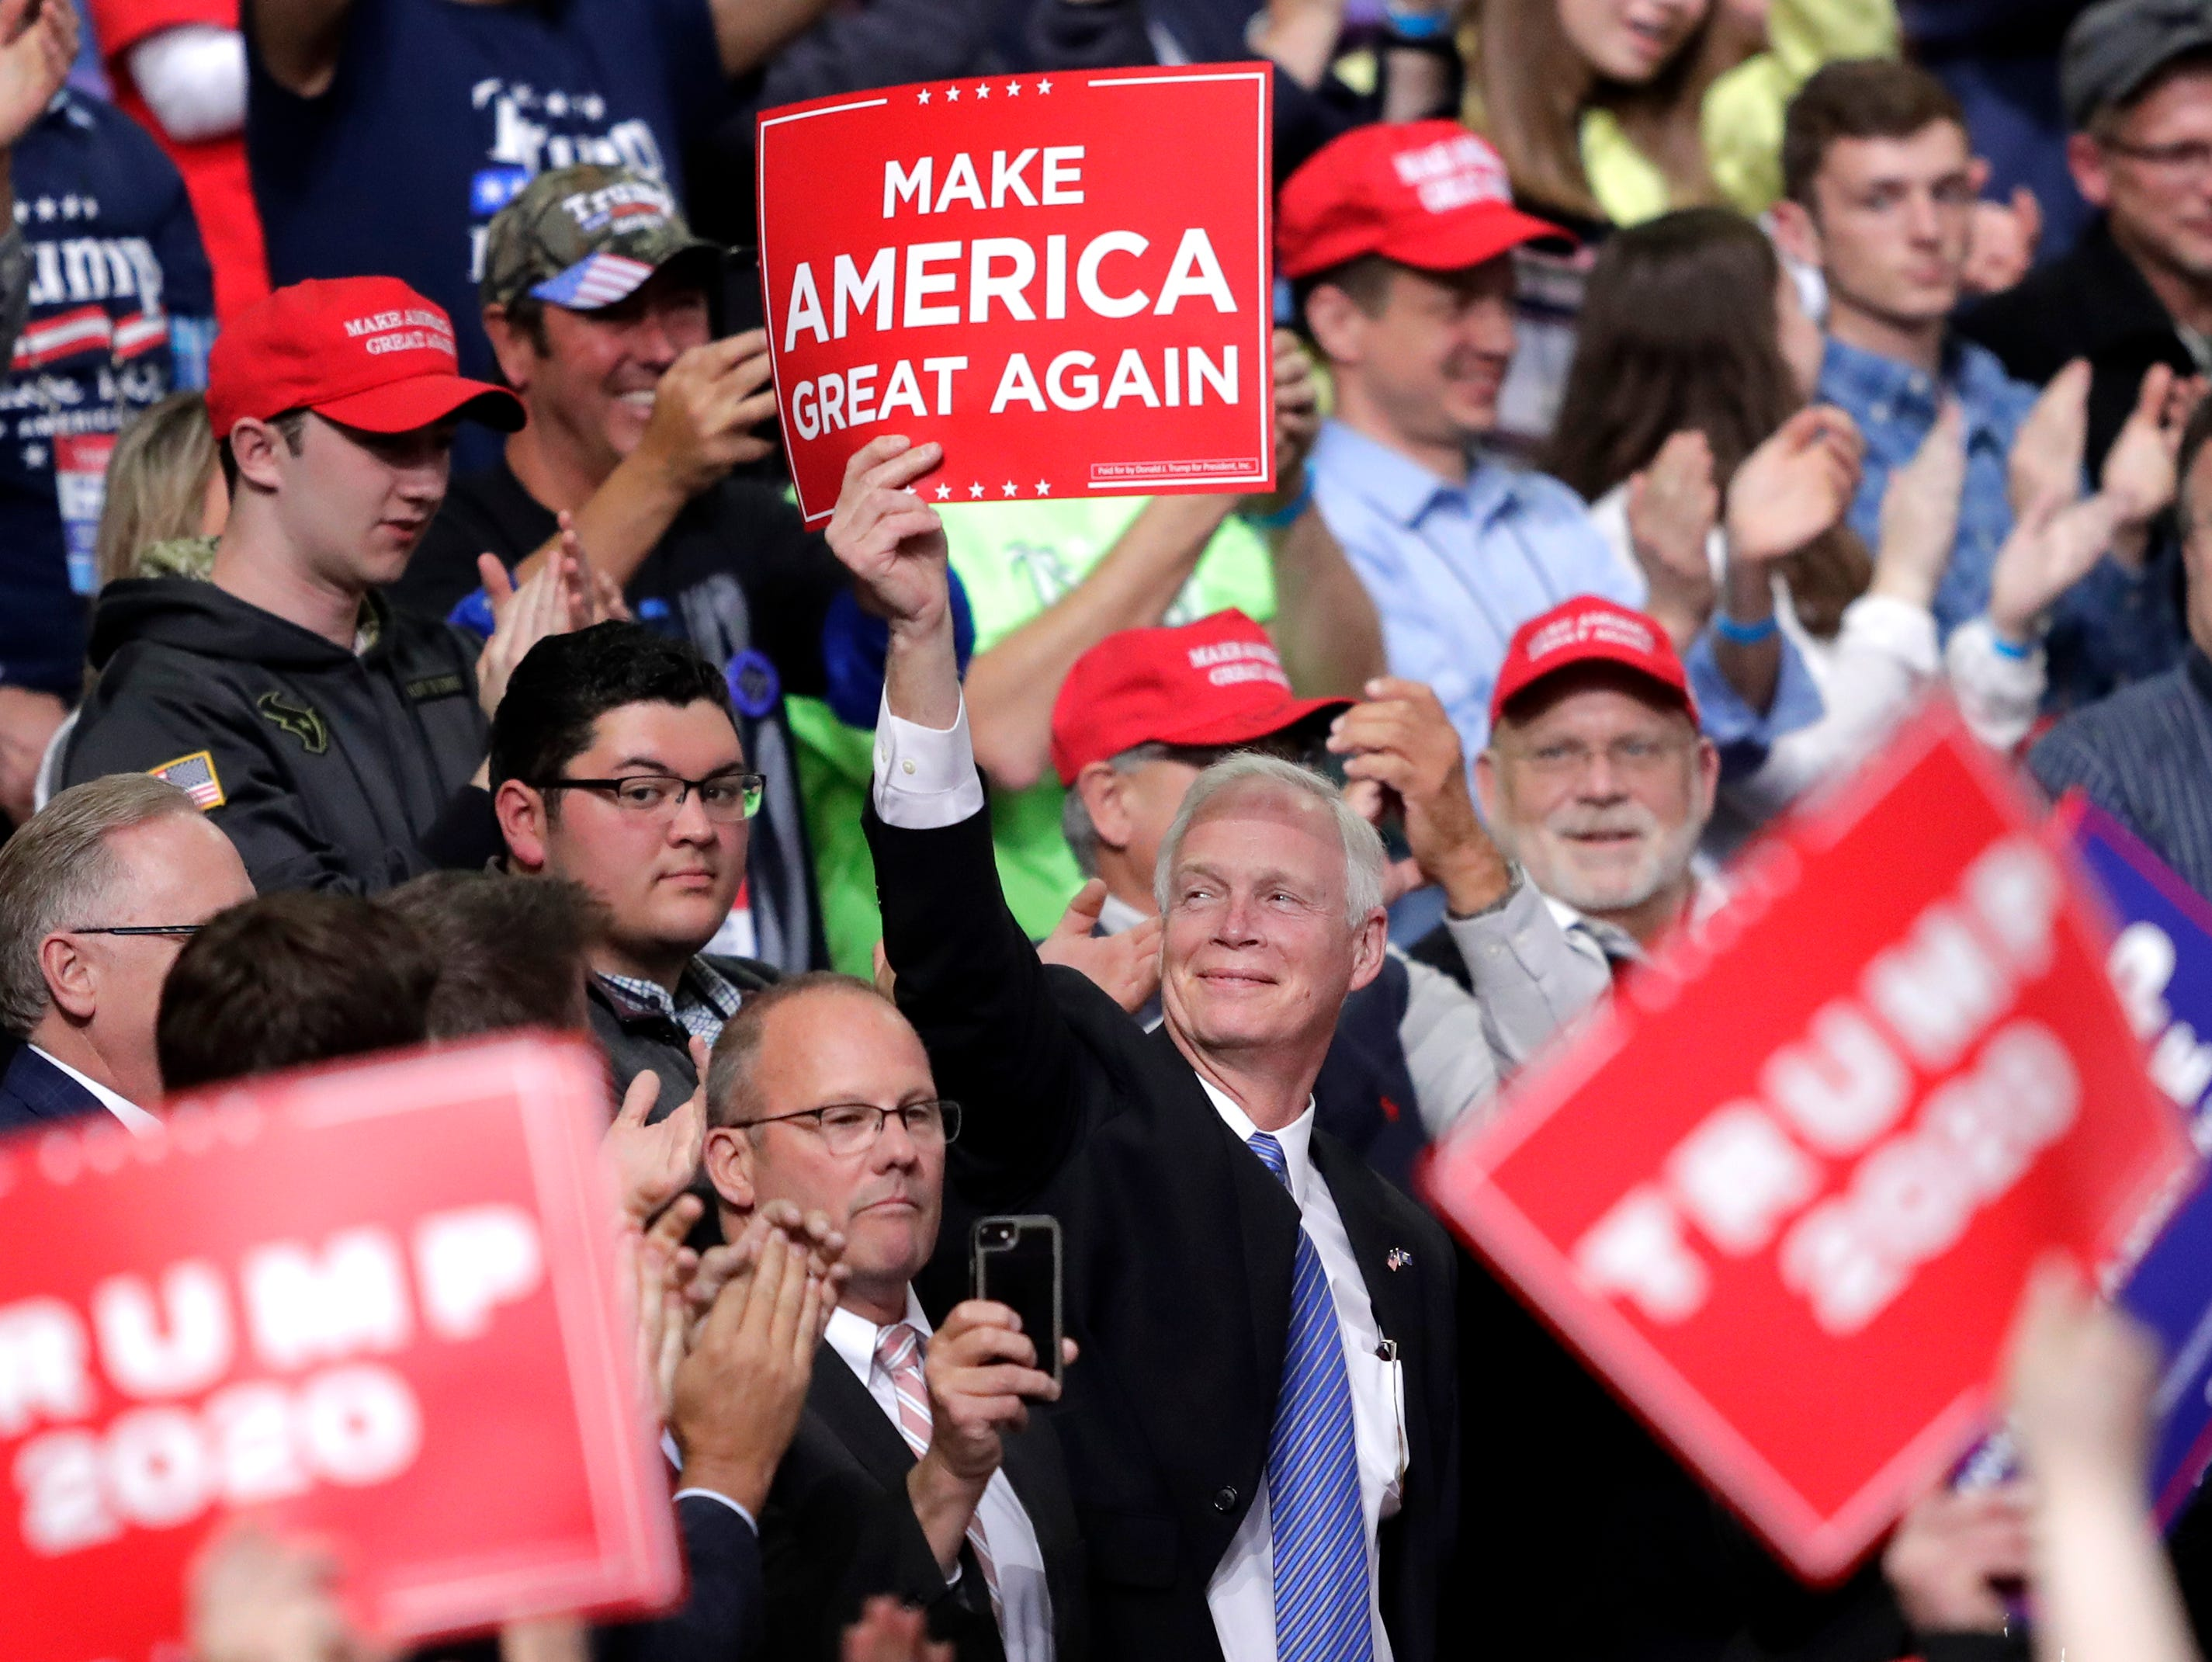 U.S. Senator Ron Johnson cheers as President Donald J. Trump speaks during a Make America Great Again Rally on Saturday, April 27, 2019, at the Resch Center in Green Bay, Wis.